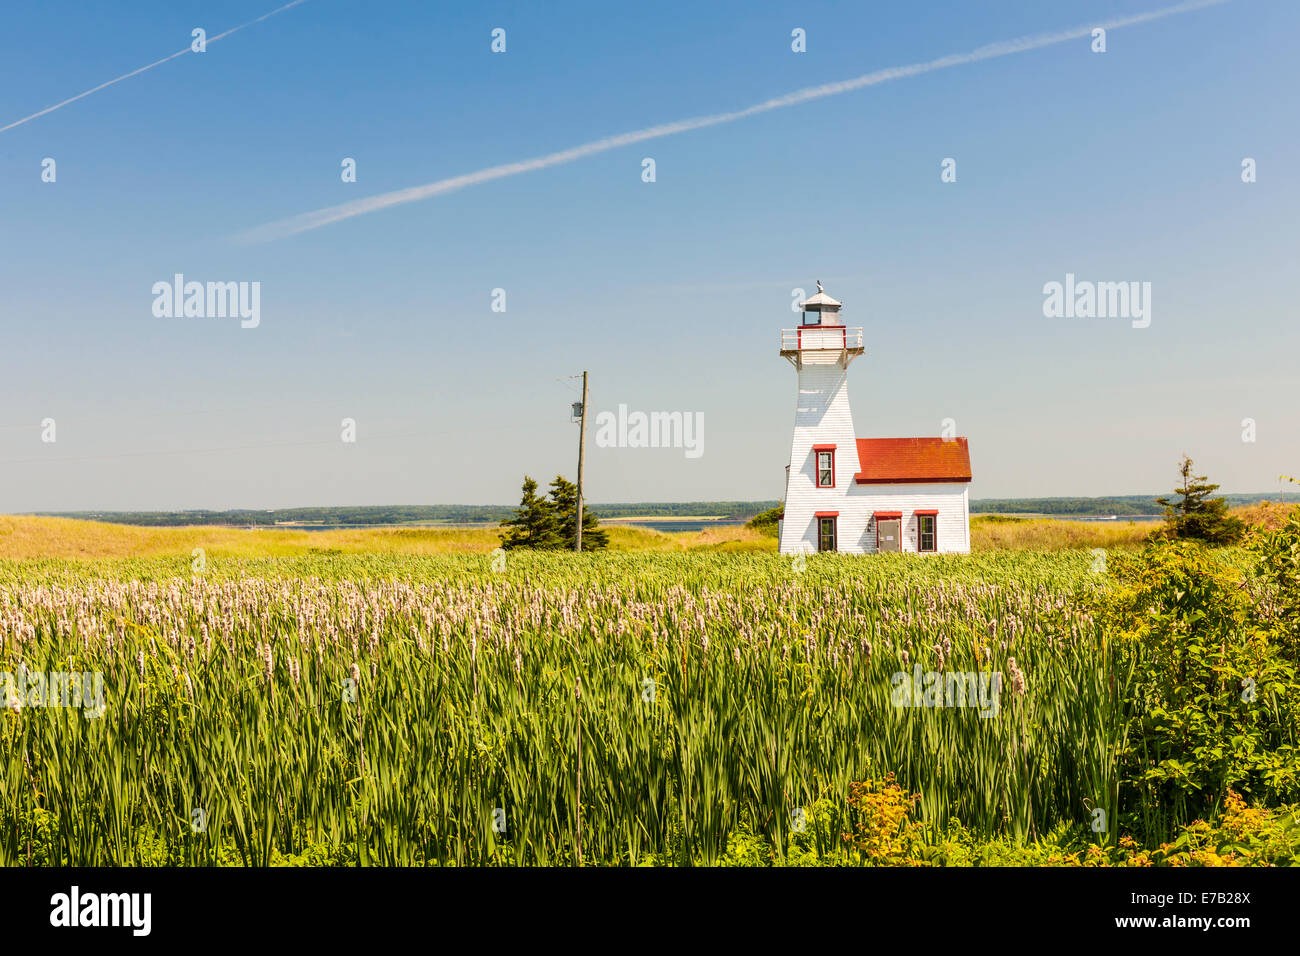 New London Range Rear Lighthouse in Queens County, Prince Edward Island, Canada - Stock Image